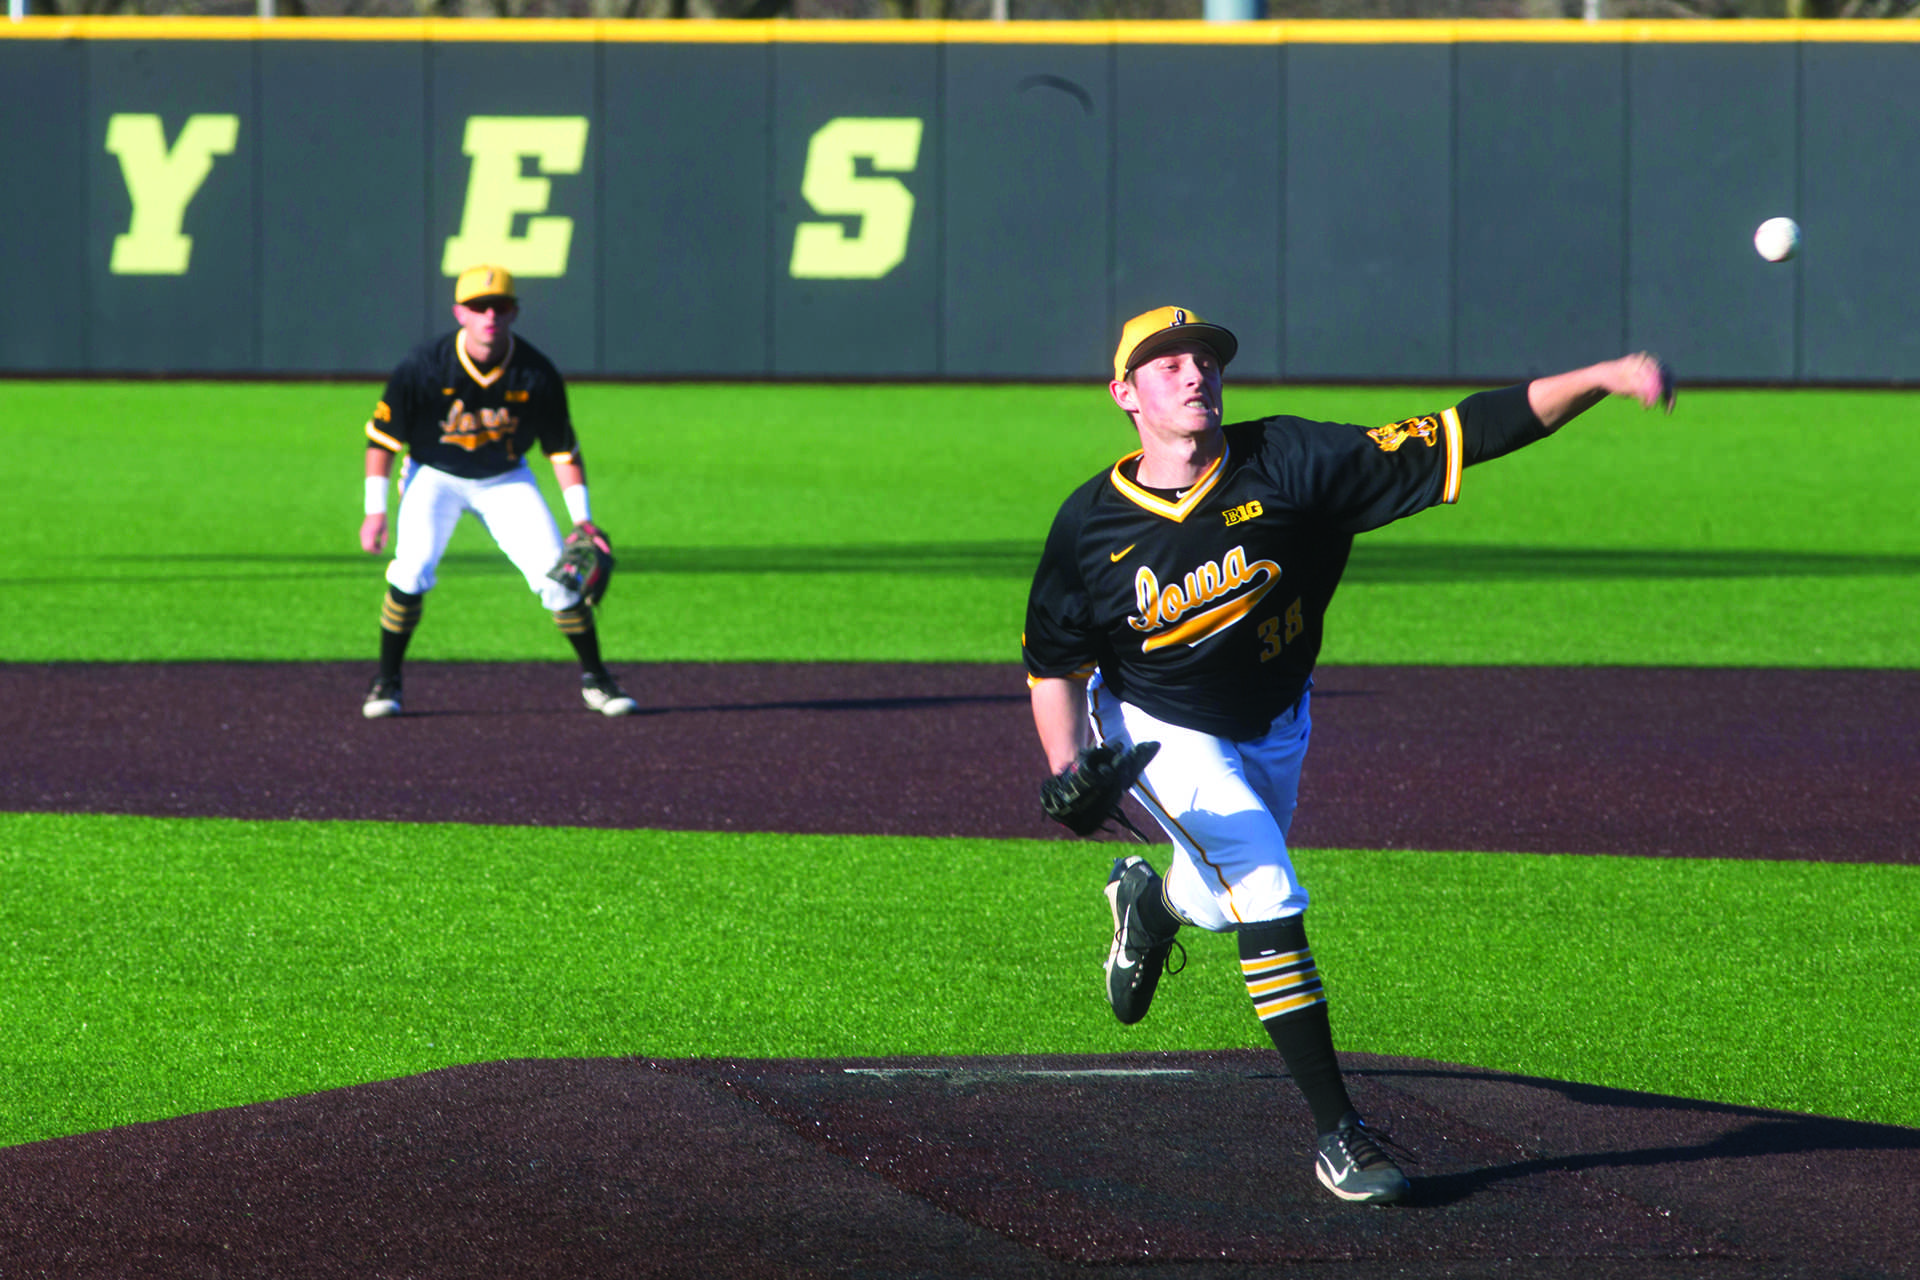 Hawkeye pitcher/outfielder, Freshman Trenton Wallace, warms up during Men's Baseball at Duane Banks Fields on Wednesday Apr. 25, 2018. The Hawkeyes defeated the Panthers 12-4. (Katie Goodale/The Daily Iowan)